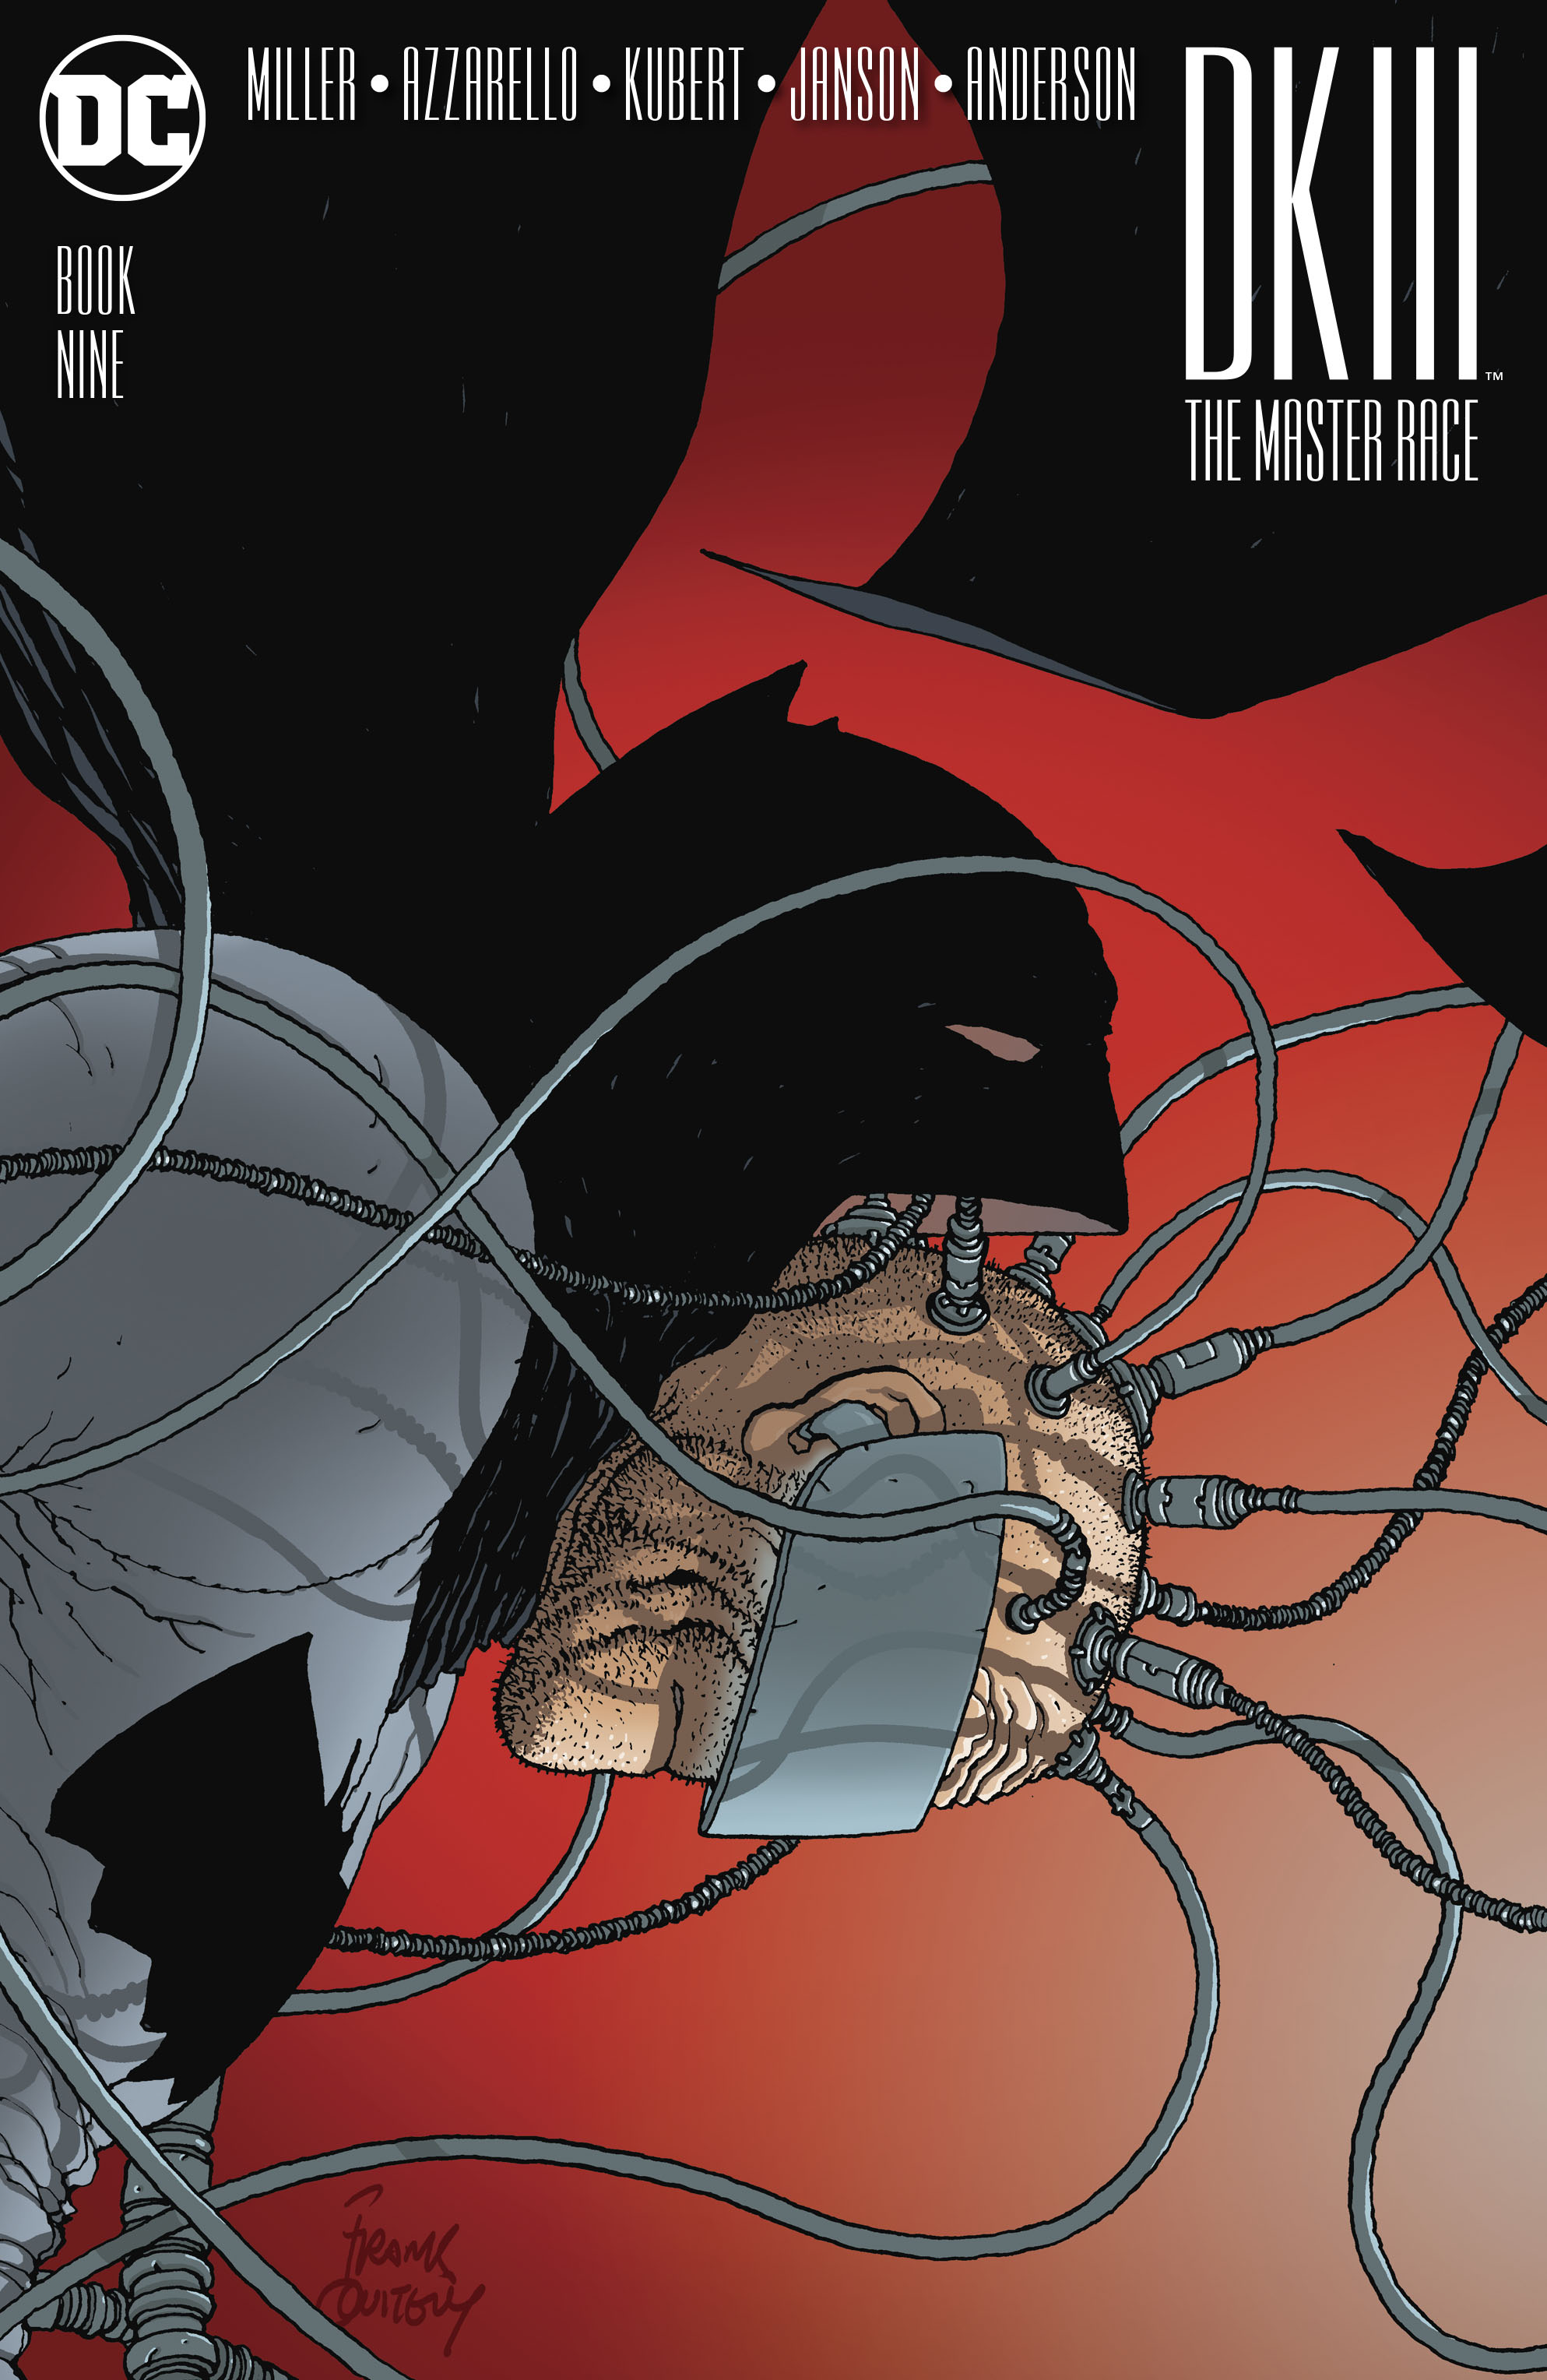 Read online Dark Knight III: The Master Race comic -  Issue #9 - 6